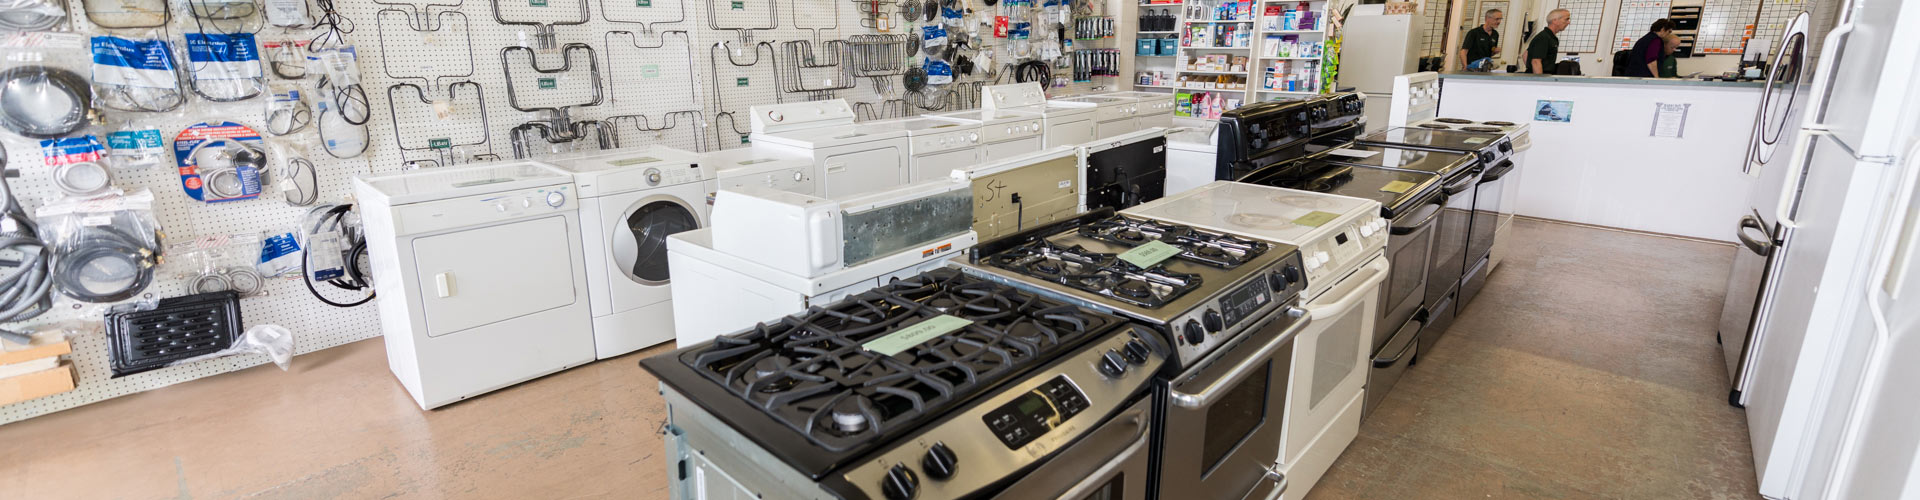 Refurbished Appliances